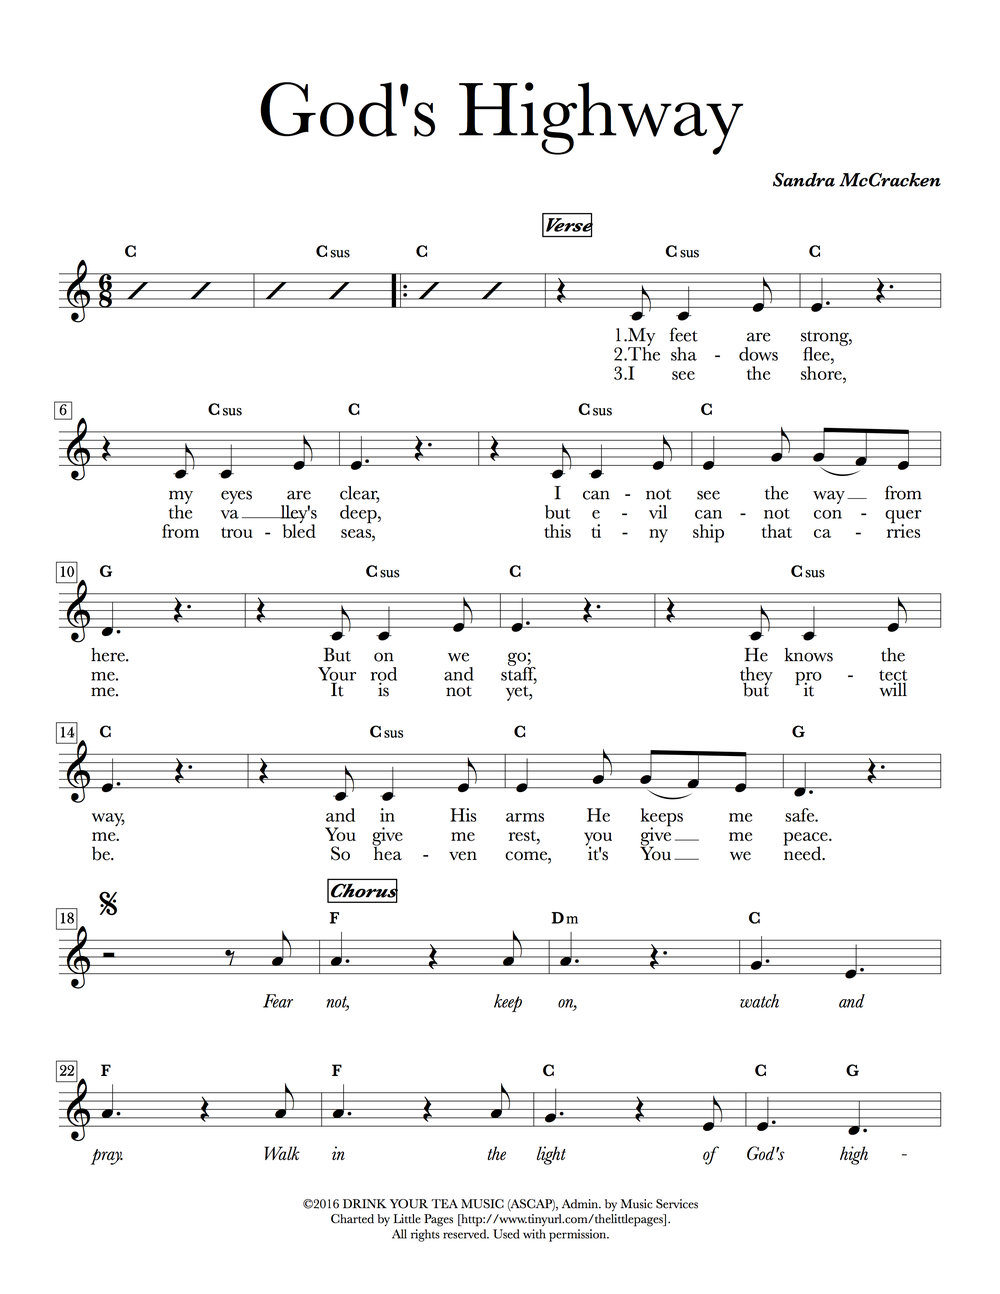 Lead sheets from   Sandra McCracken's   album  God's Highway.